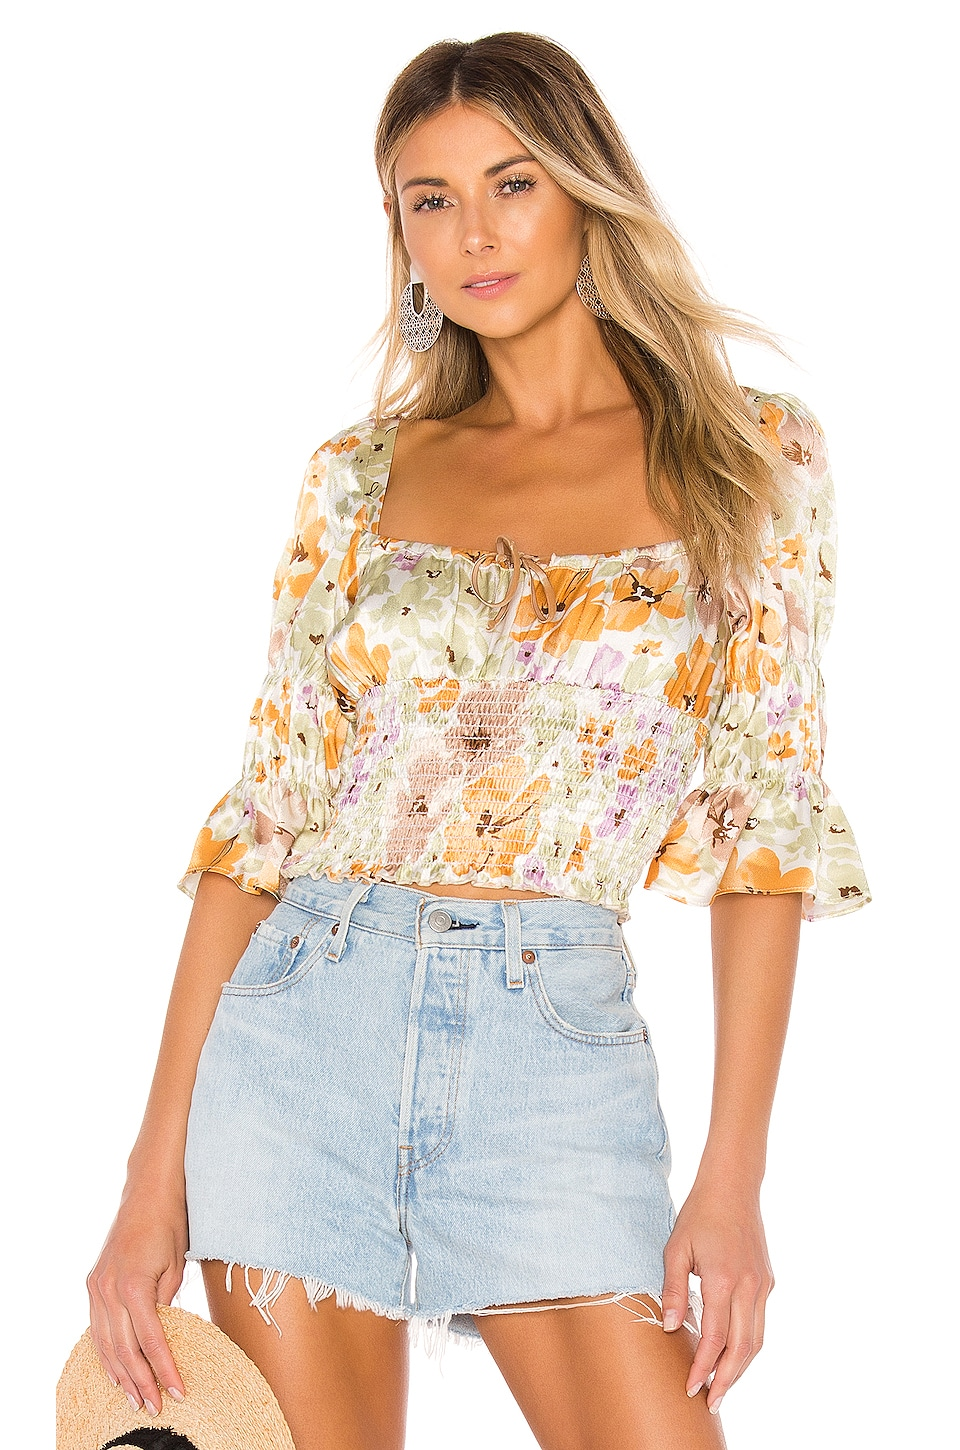 ELLEJAY Amanda Top en Flower